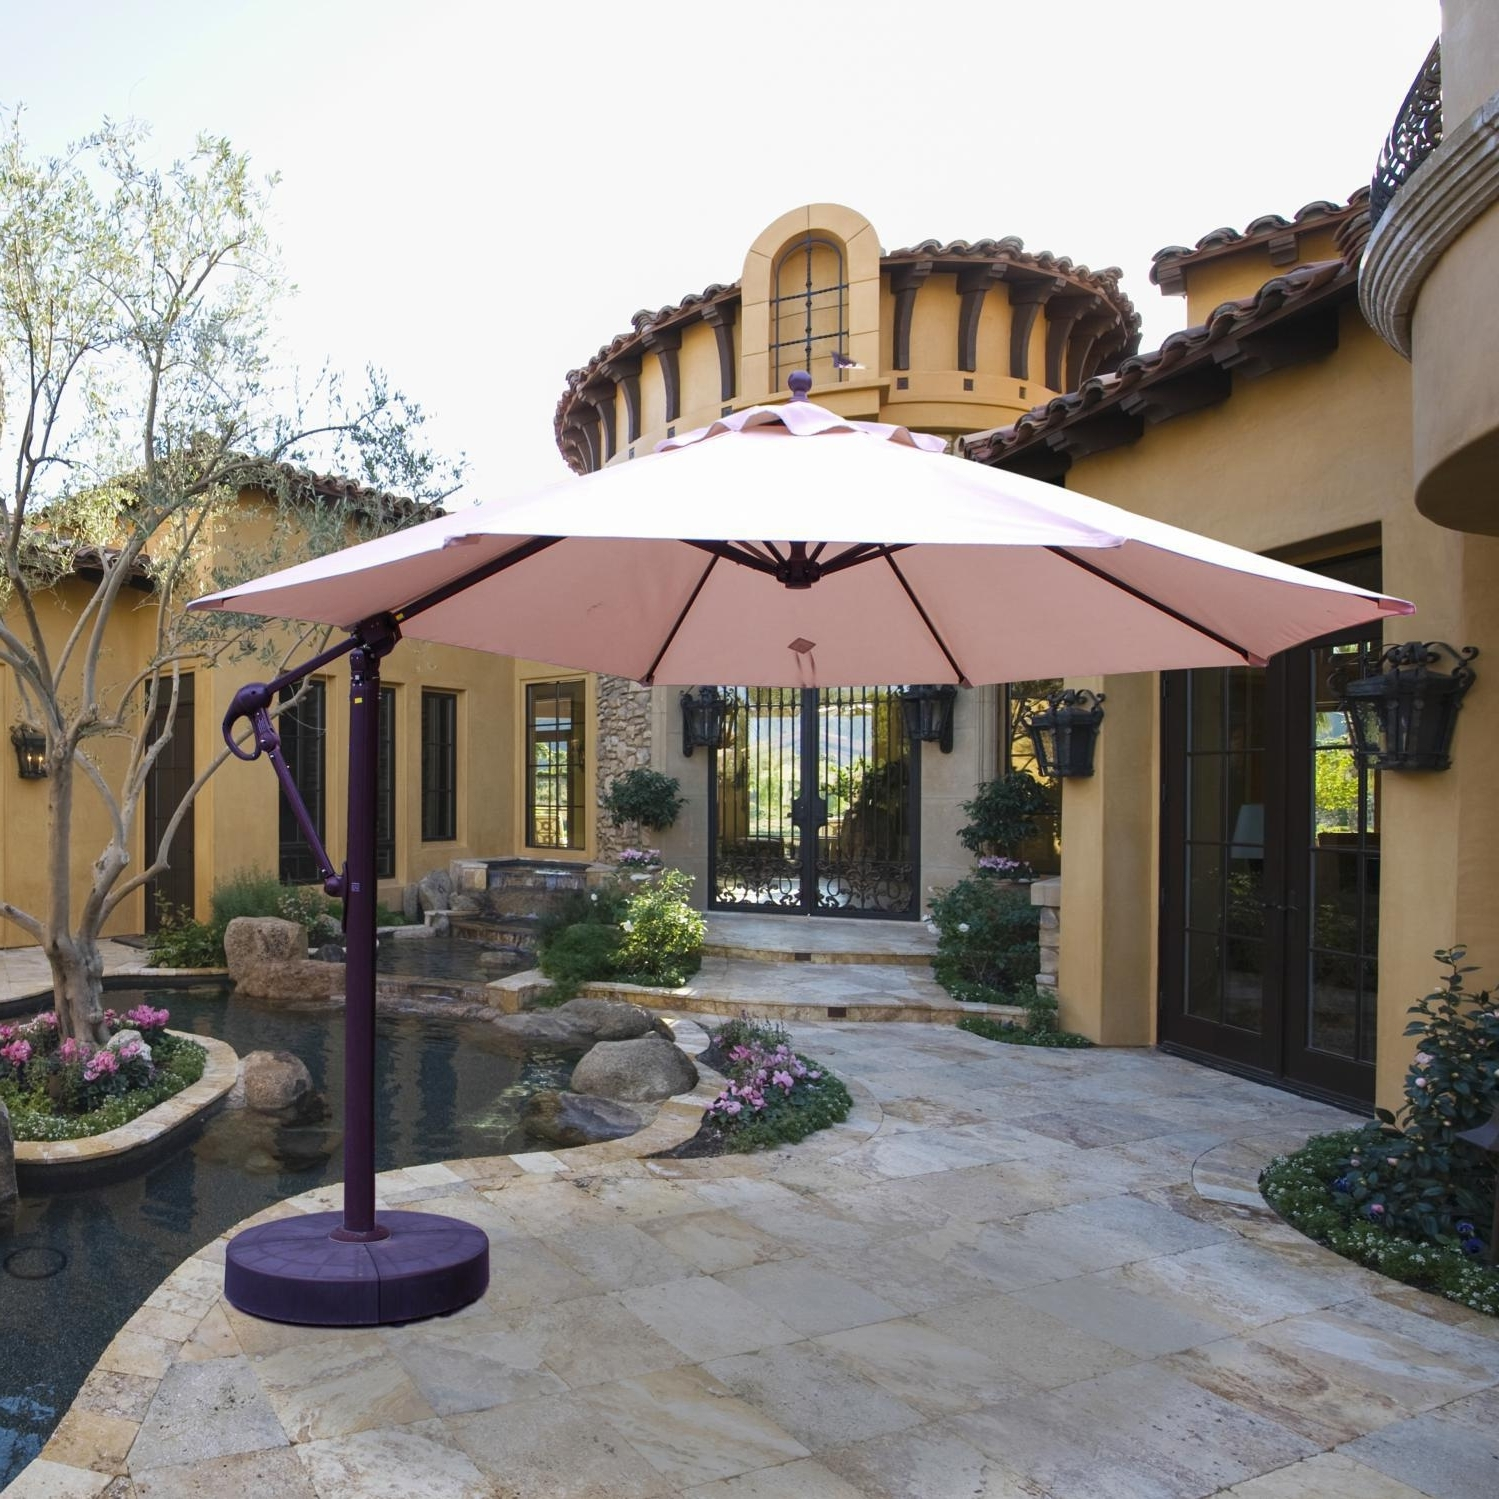 Galtech 11 Ft Aluminum Cantilever Patio Umbrella With Easy Lift And Throughout Well Known 11 Ft Patio Umbrellas (Gallery 14 of 20)